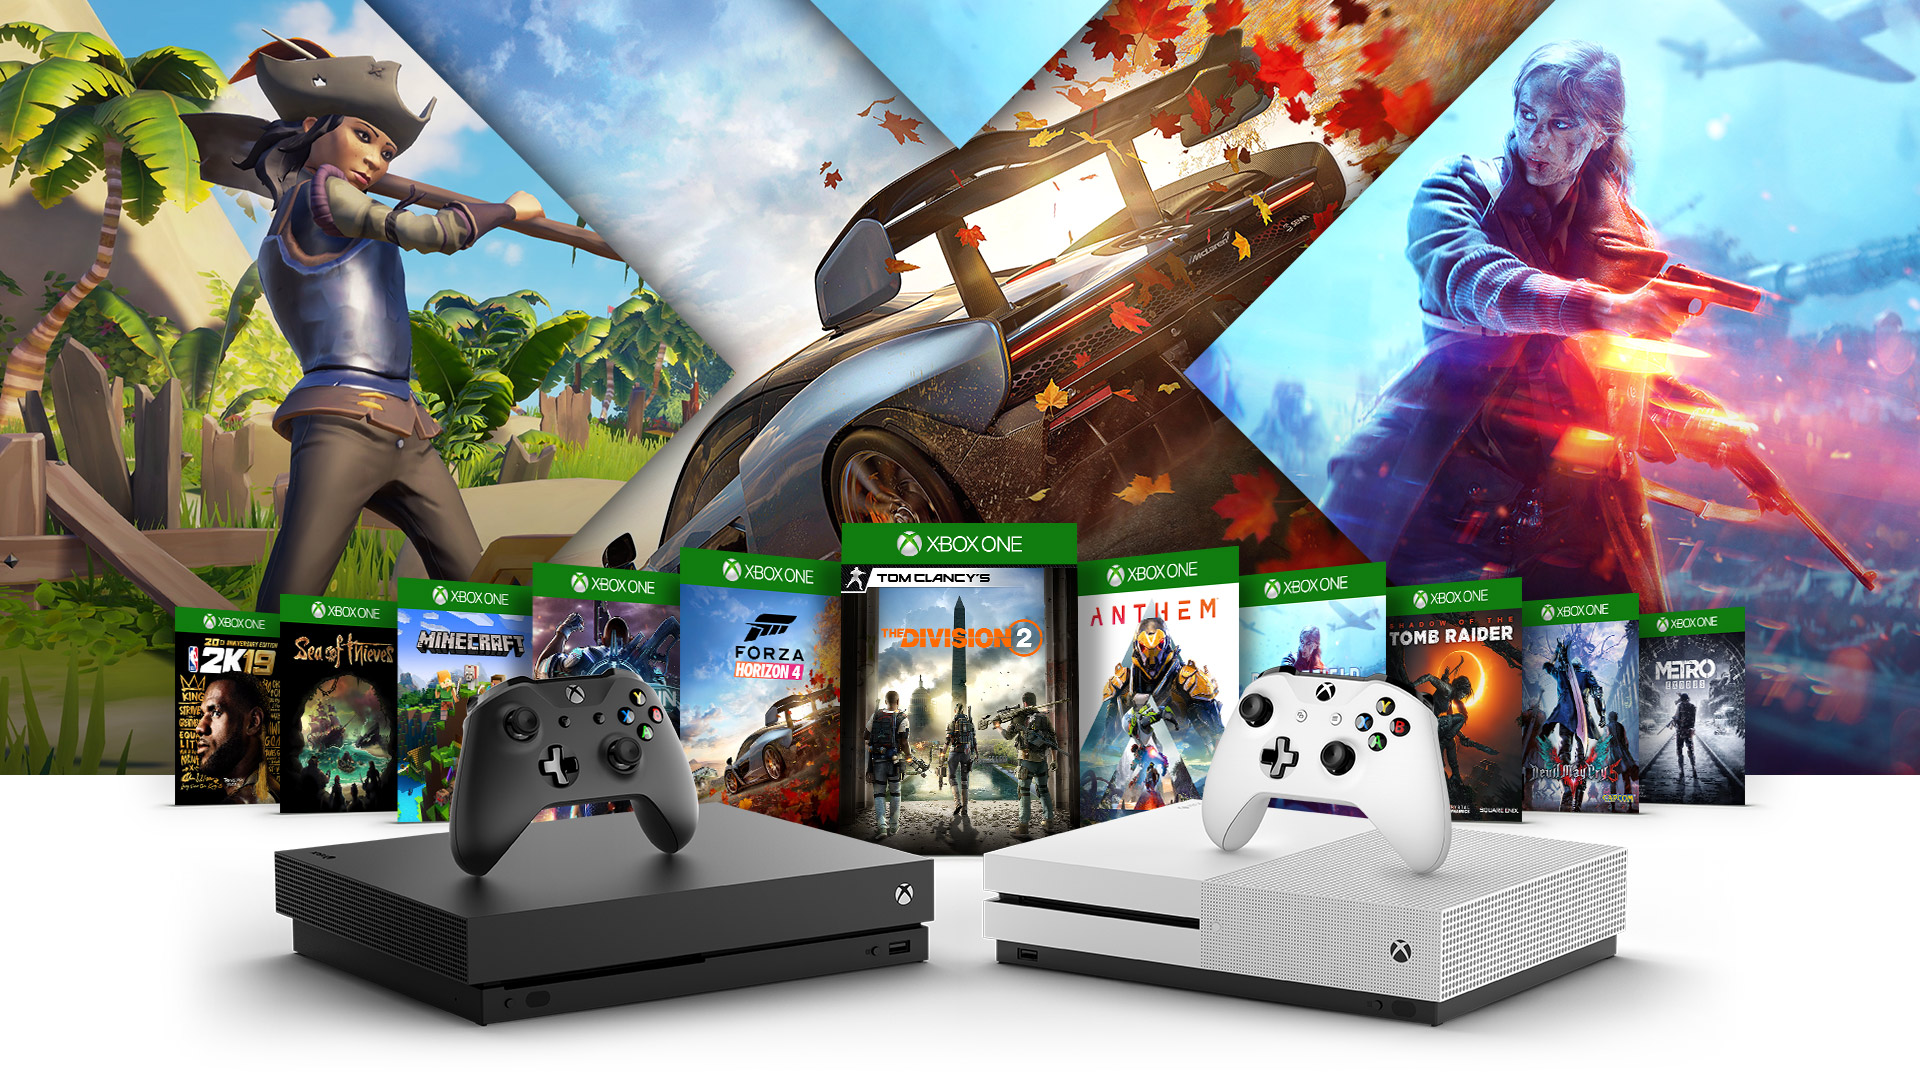 Crackdown 3, Sea of Thieves, Minecraft, Madden 19, 2K19, Forza Horizon 4, Fallout 76, Battlefield Five, Shadow of the Tomb Raider, PlayUnknown Battlegrounds ve State of Decay 2 kutu resimleriyle çevrili Xbox One X, Xbox One S ve Xbox One S All Digital Edition konsollarının yandan görünümü